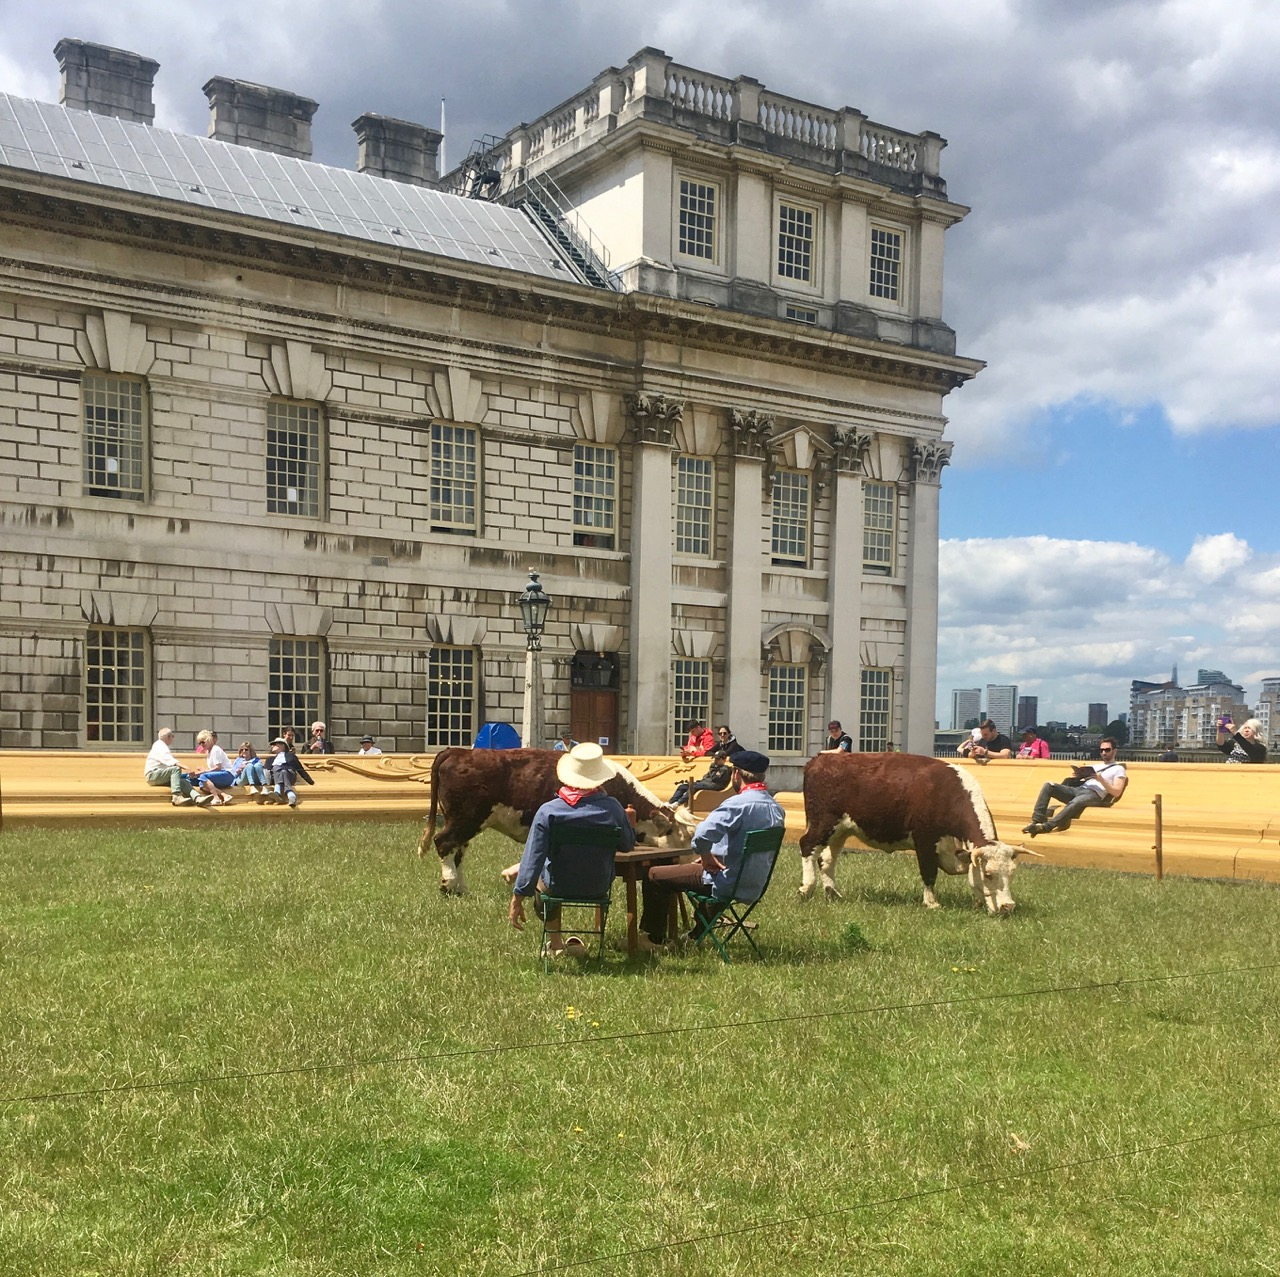 cows at the old royal naval college